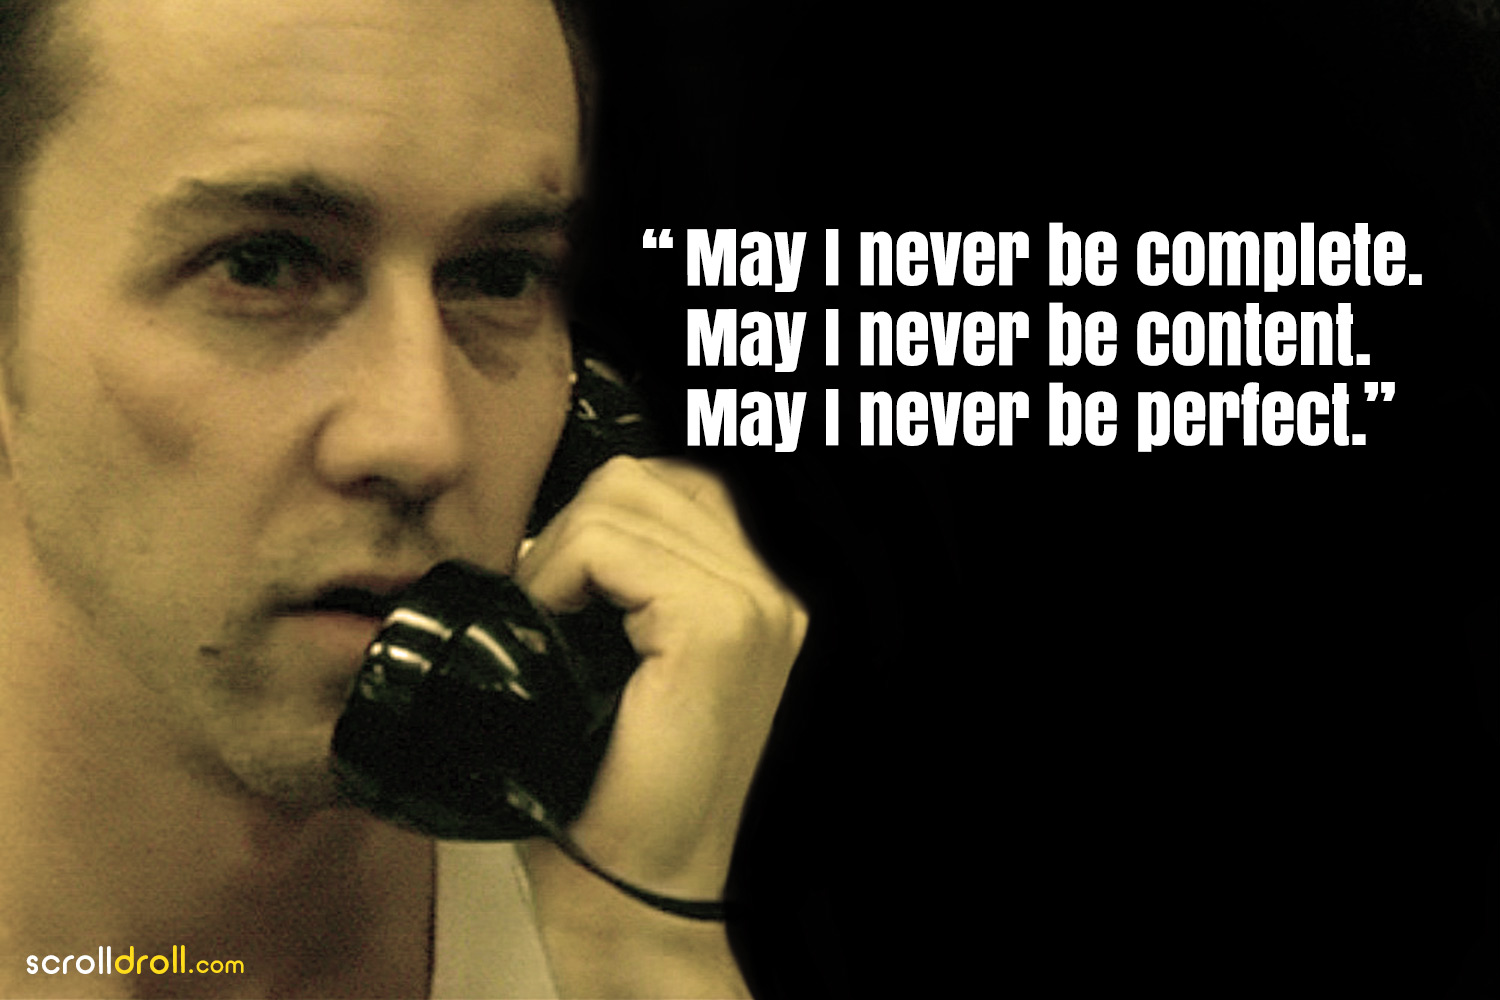 Fight Club Quotes-May i never be complete may i never be content may i never be perfect